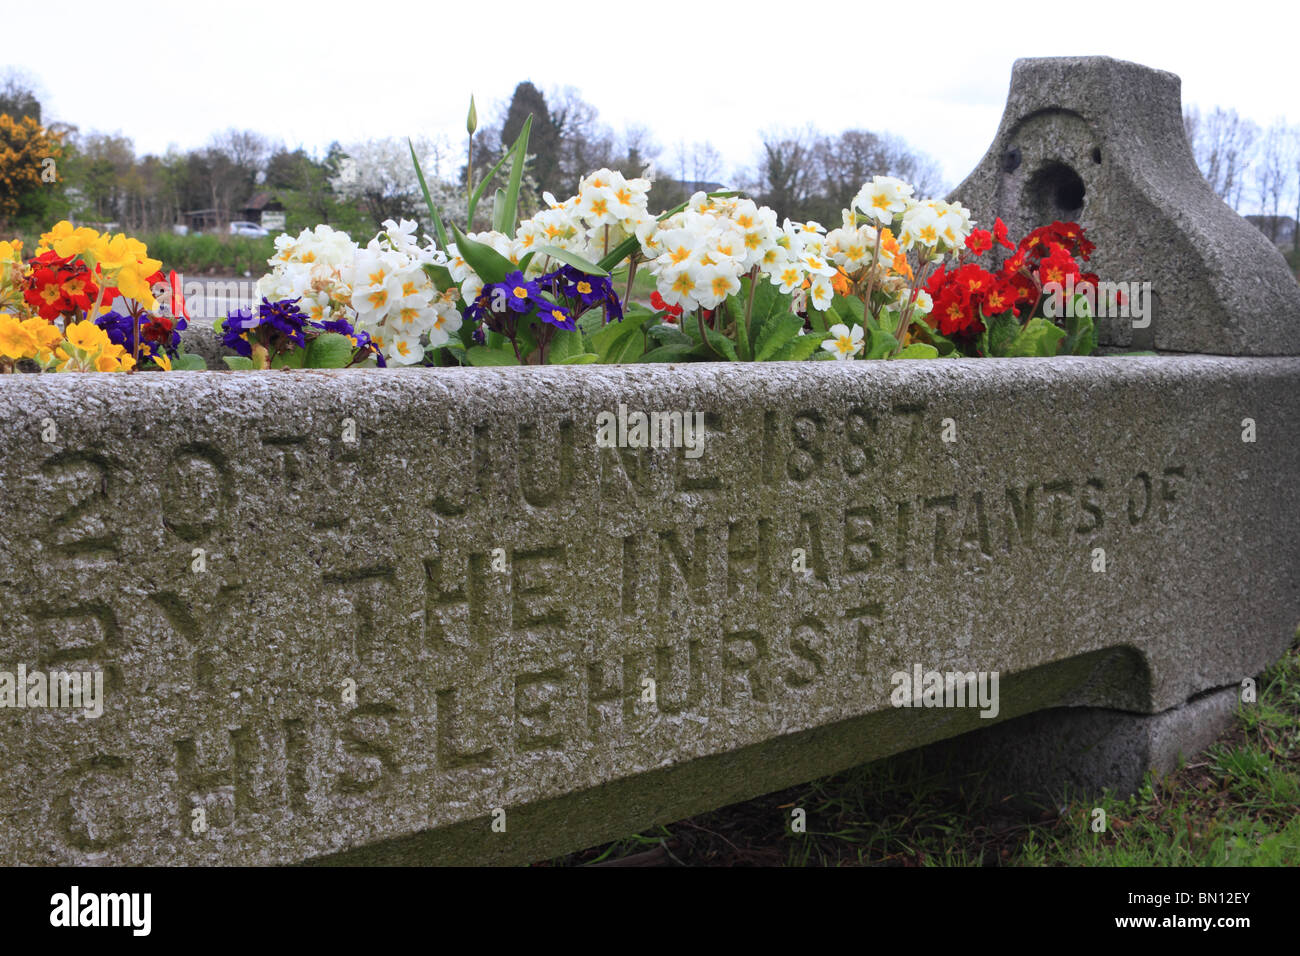 Victorian cattle trough planted with flowers Chislehurst, Kent, - Stock Image